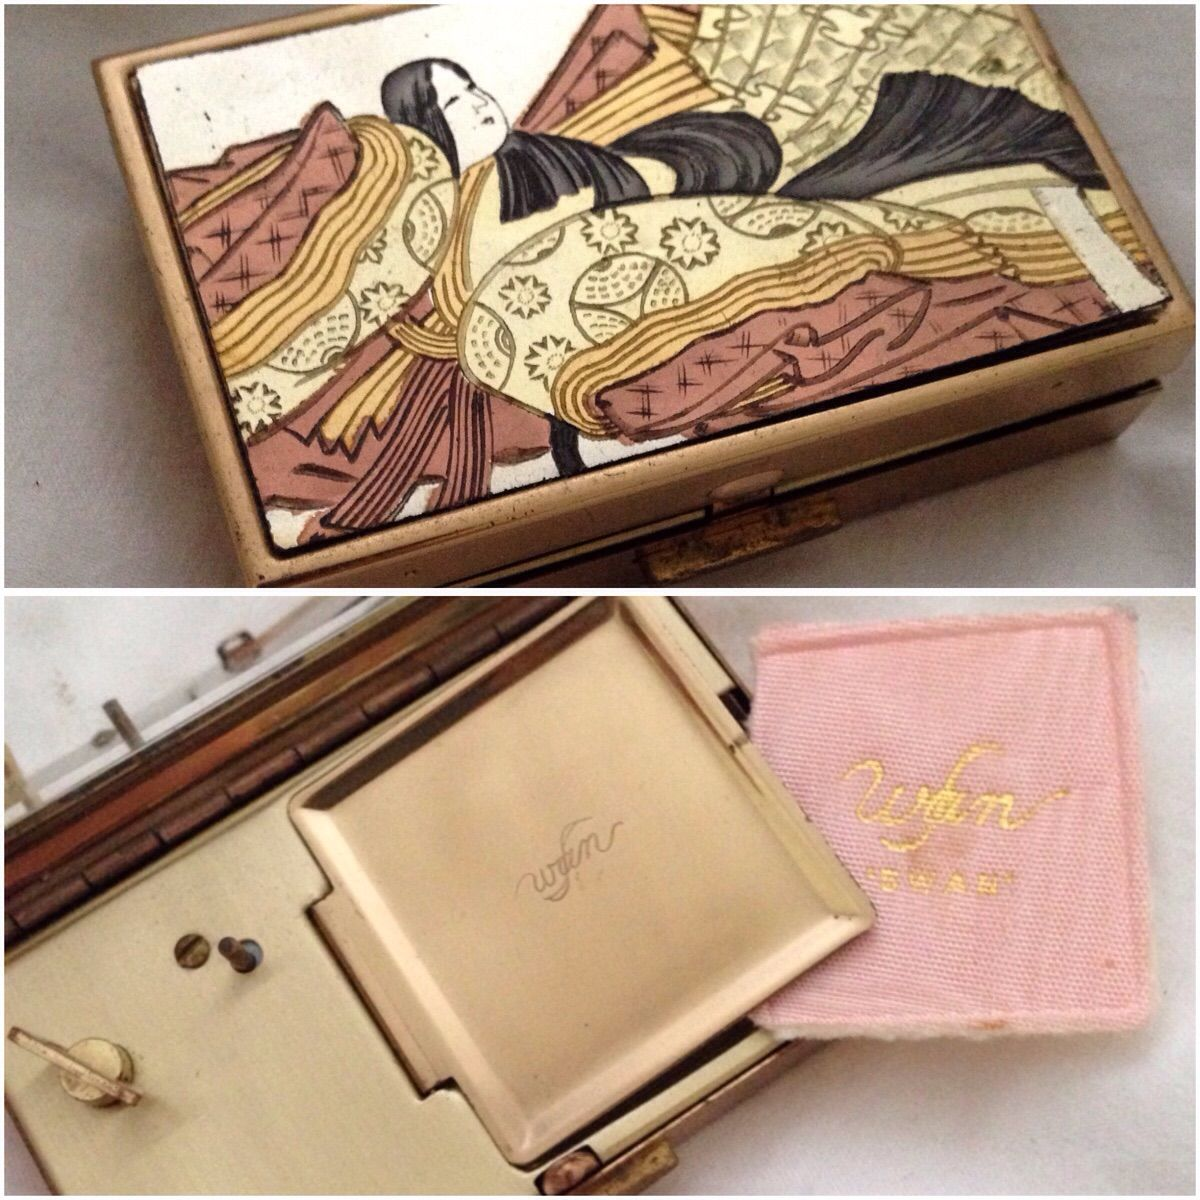 Vintage Japanese compact that is also a music box